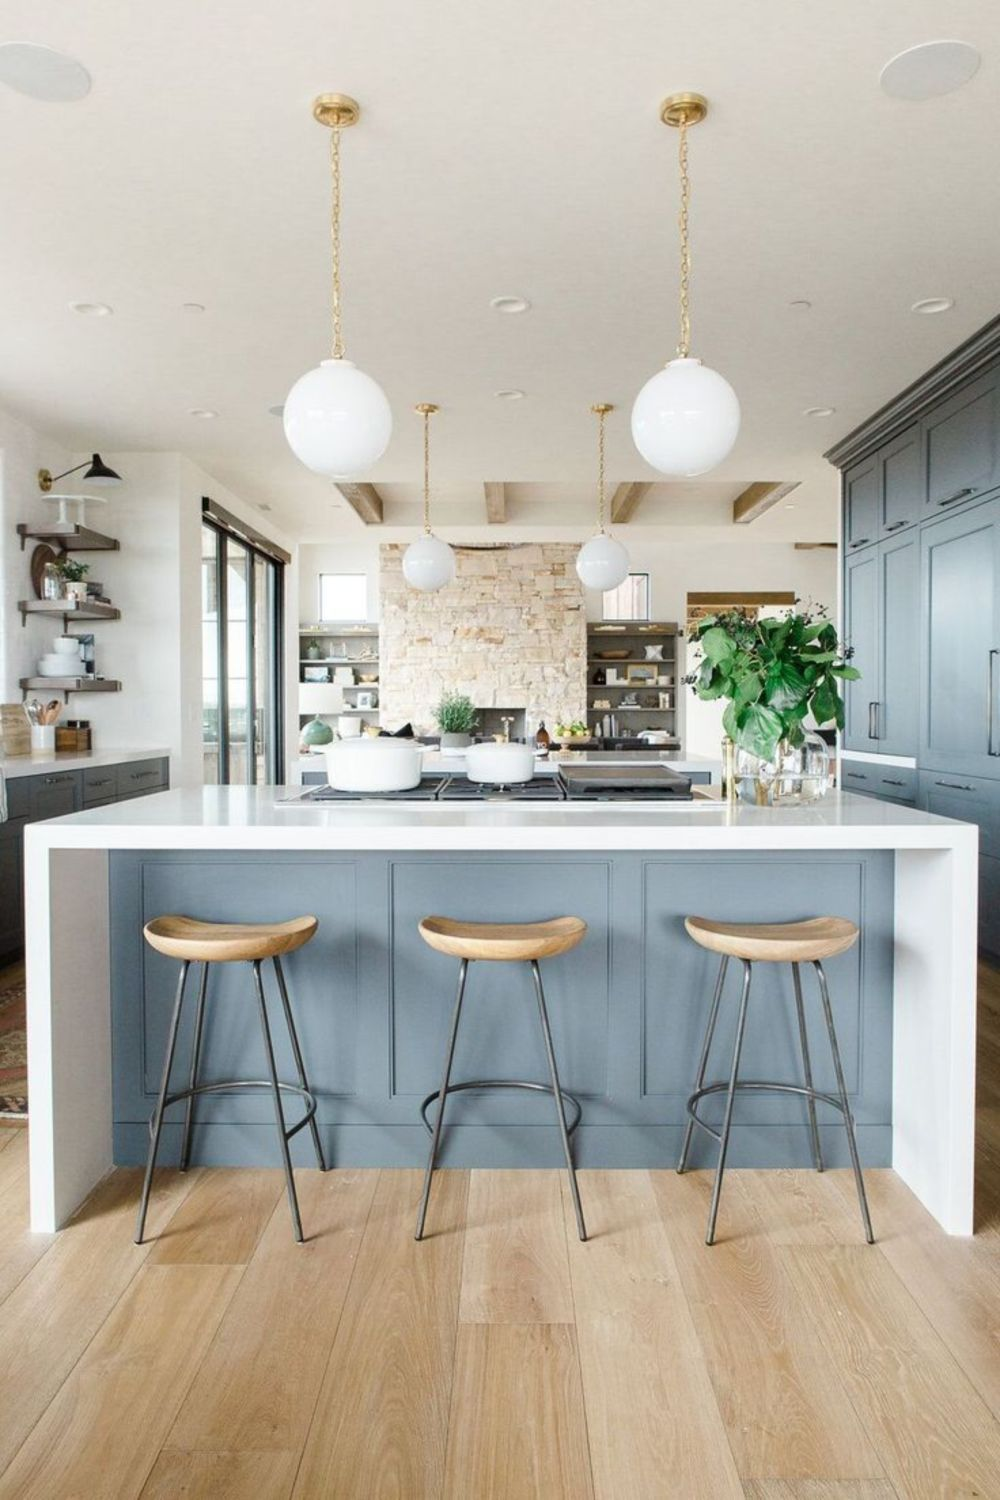 34 Kitchen Island With Grey and White Color Scheme | Nice, Kitchens ...